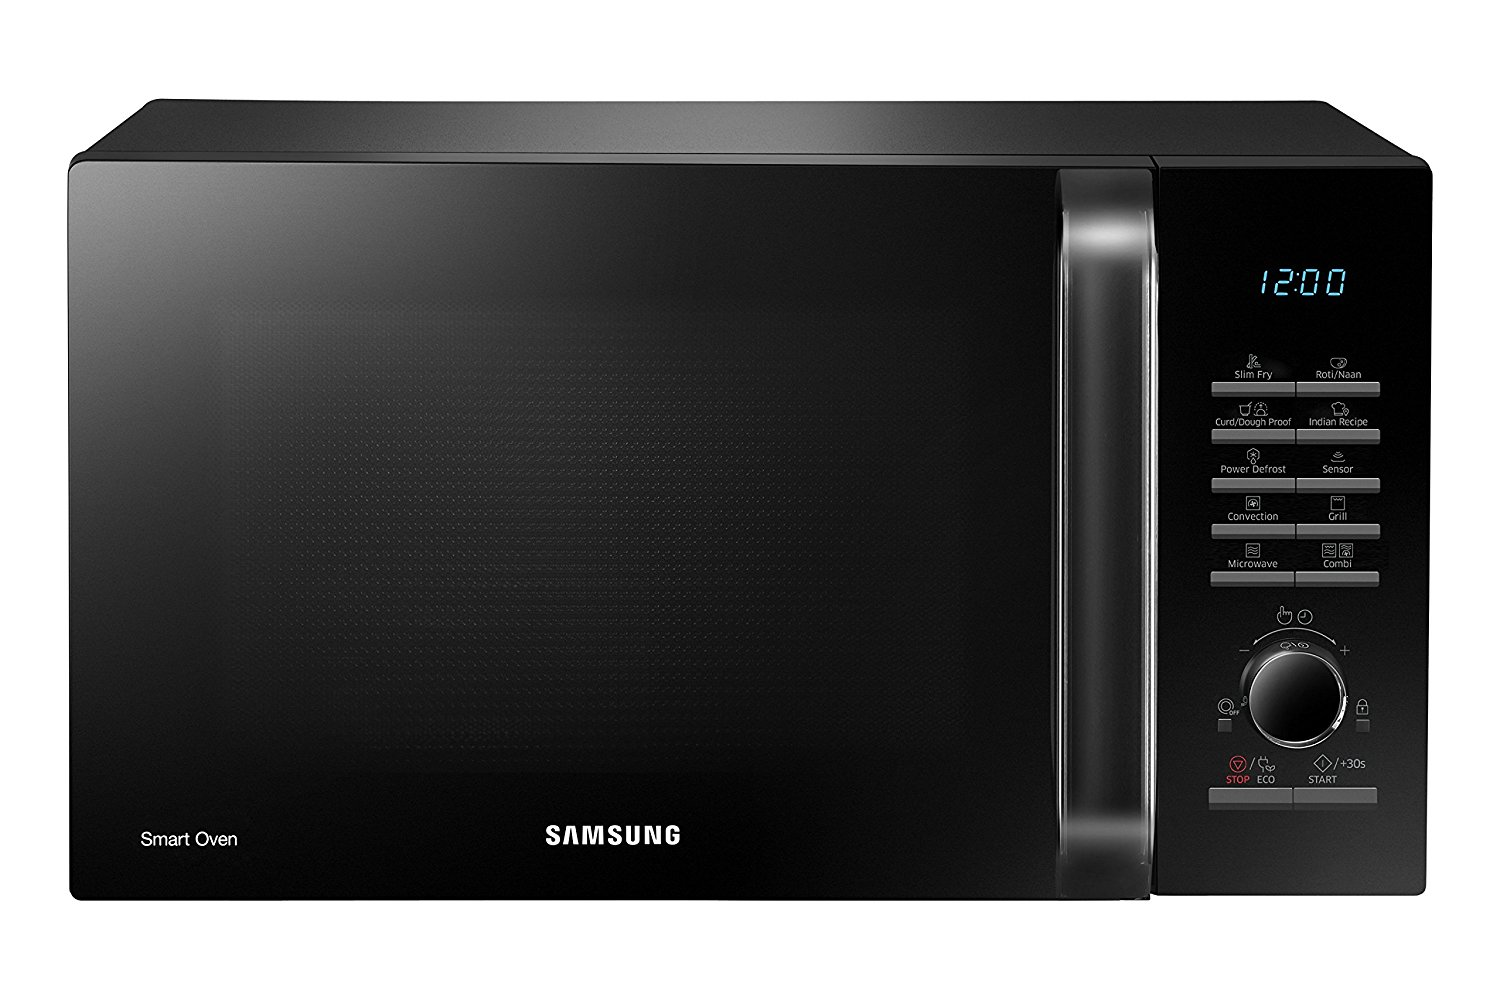 Samsung 28 L Convection Microwave Oven (MC28H5145VK/TL, Black) Review